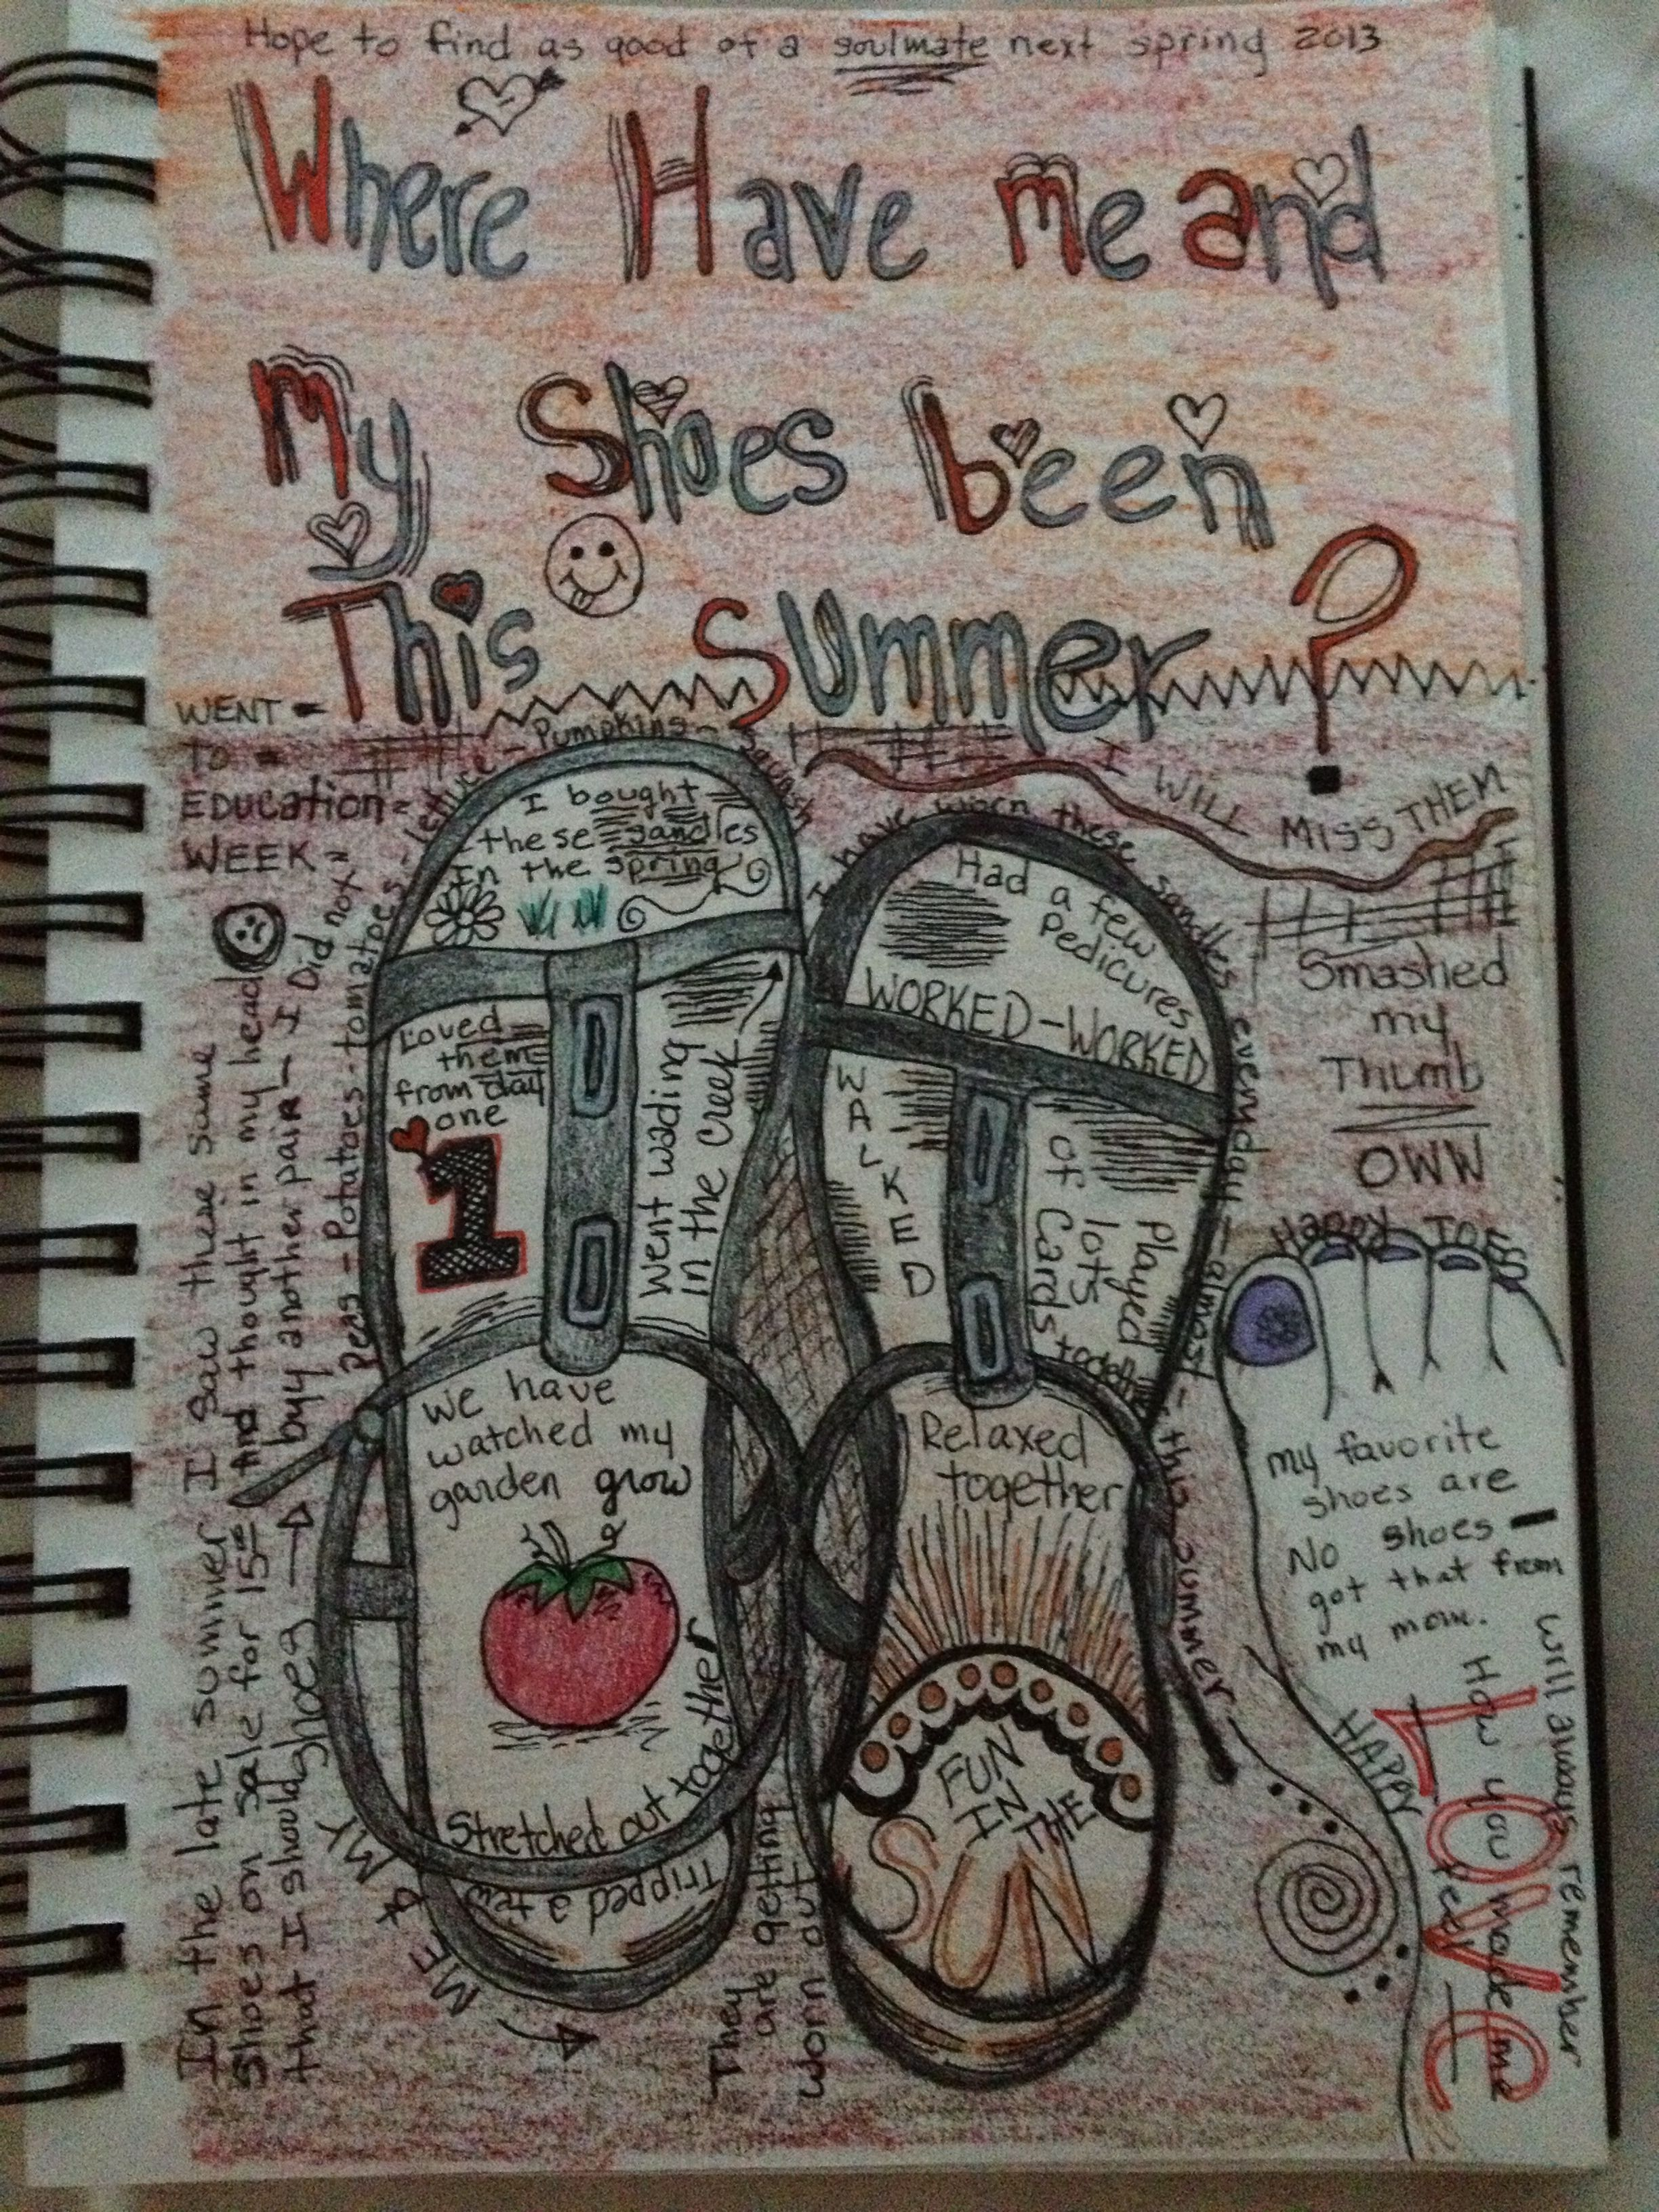 Me and my shoes. great writers notebook  idea page